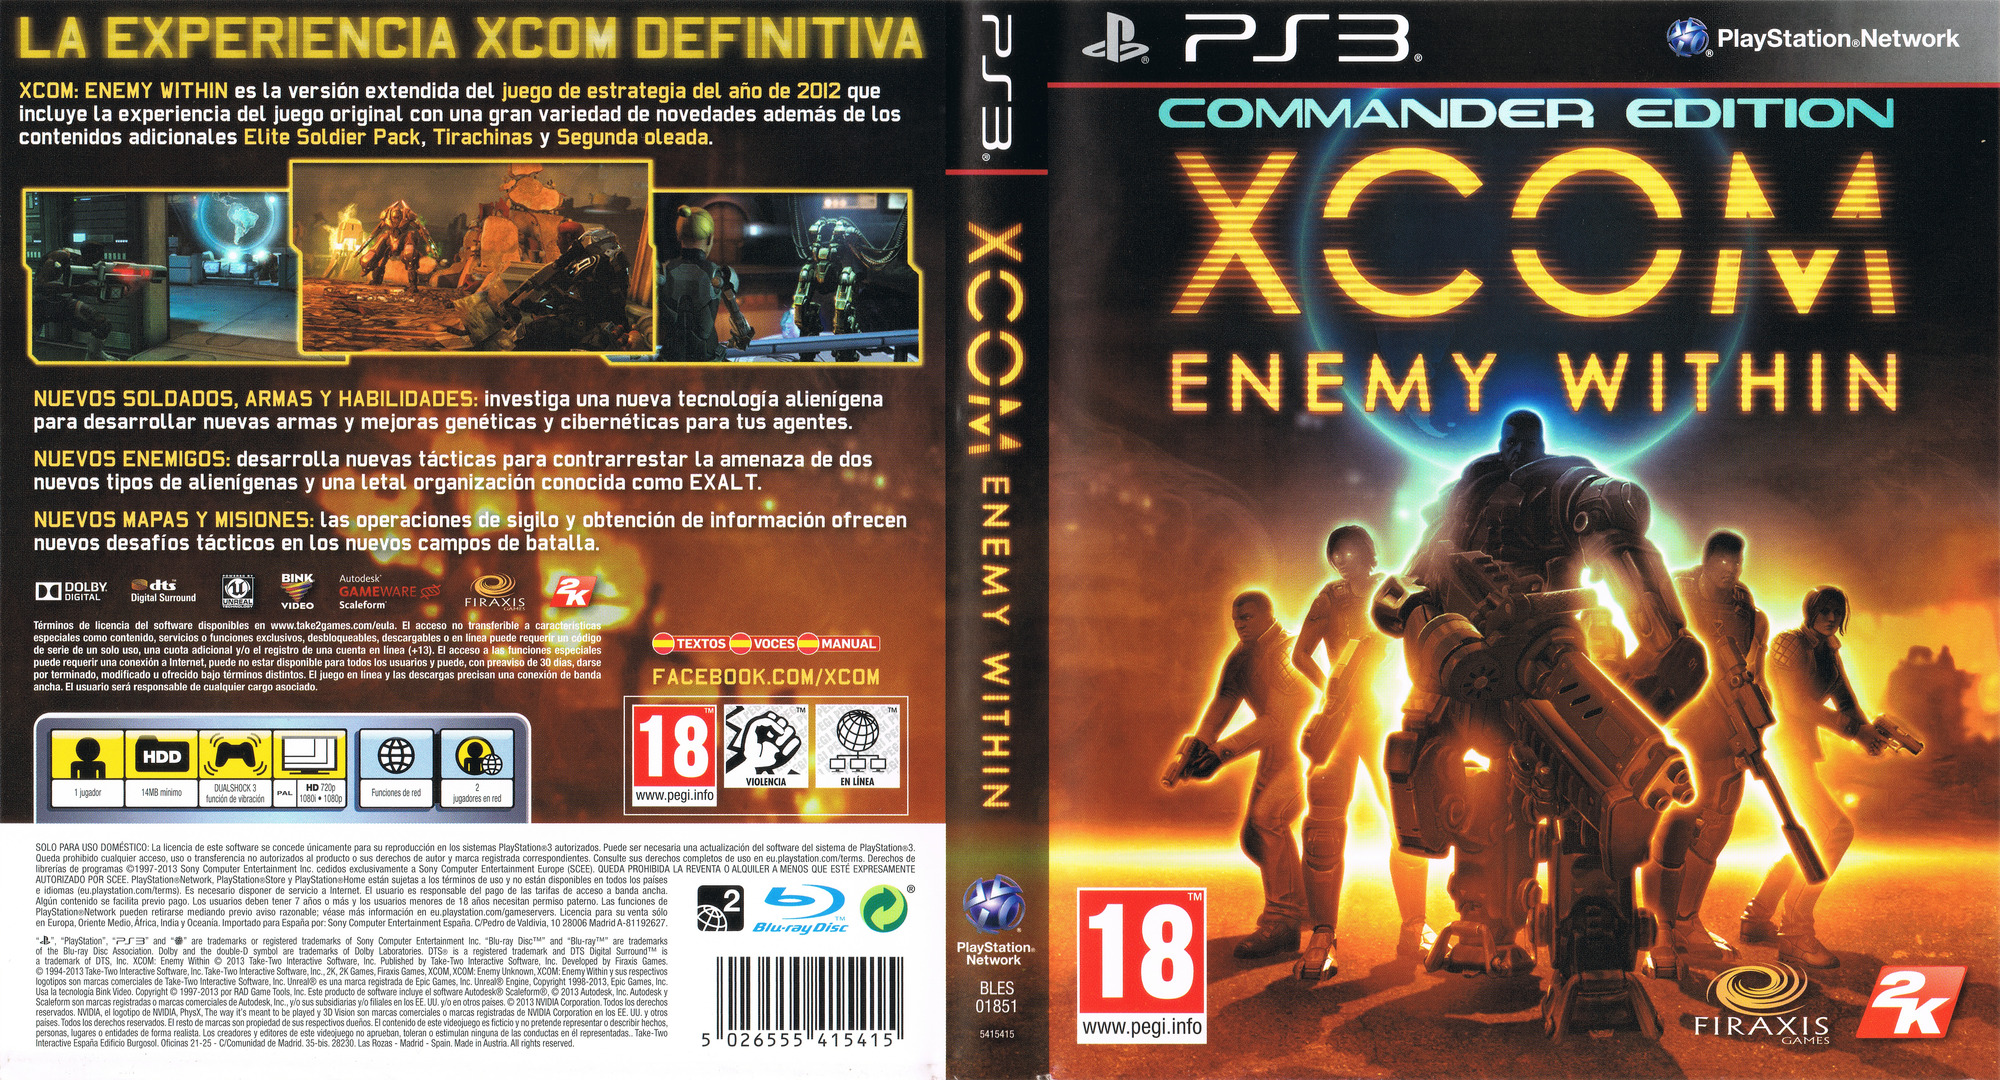 BLES01851 XCOM Enemy Within Commander Edition